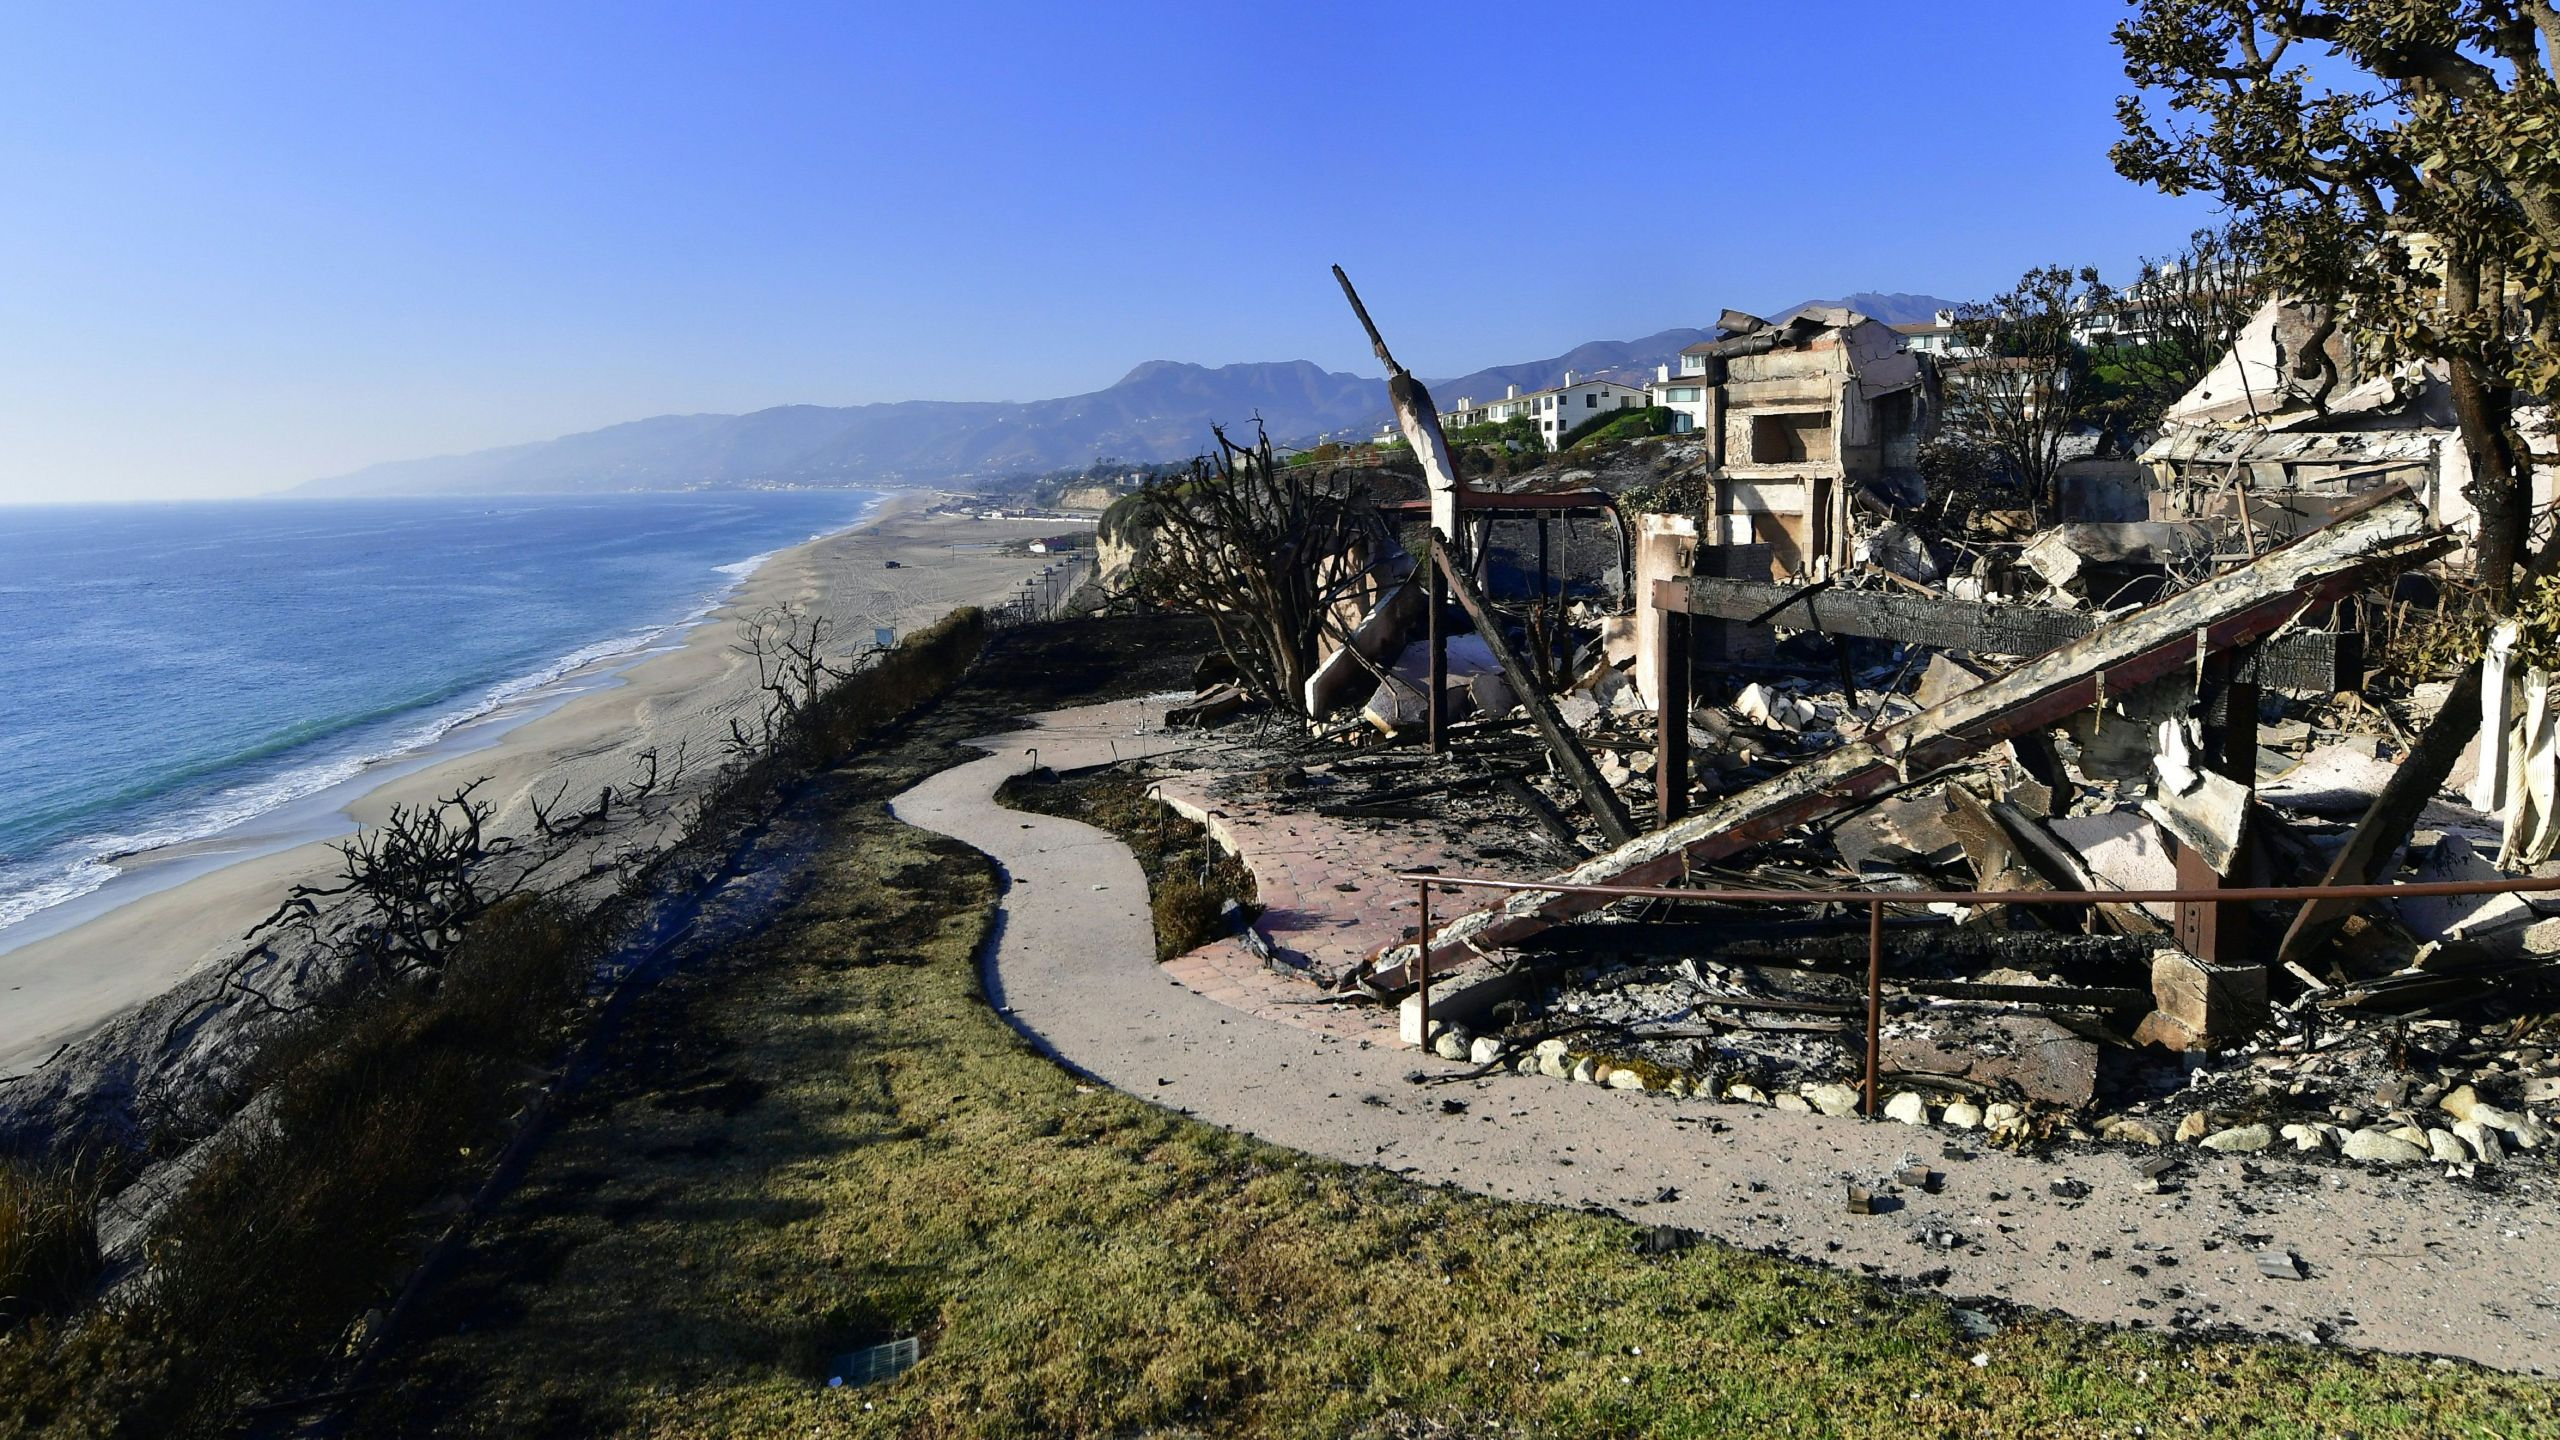 This photo shows the remains of a beachside luxury home along the Pacific Coast Highway community of Point Dume in Malibu on Nov. 11, 2018, as the battle to control the Woolsey Fire continues. (Credit: Frederic J. Brown / AFP / Getty Images)